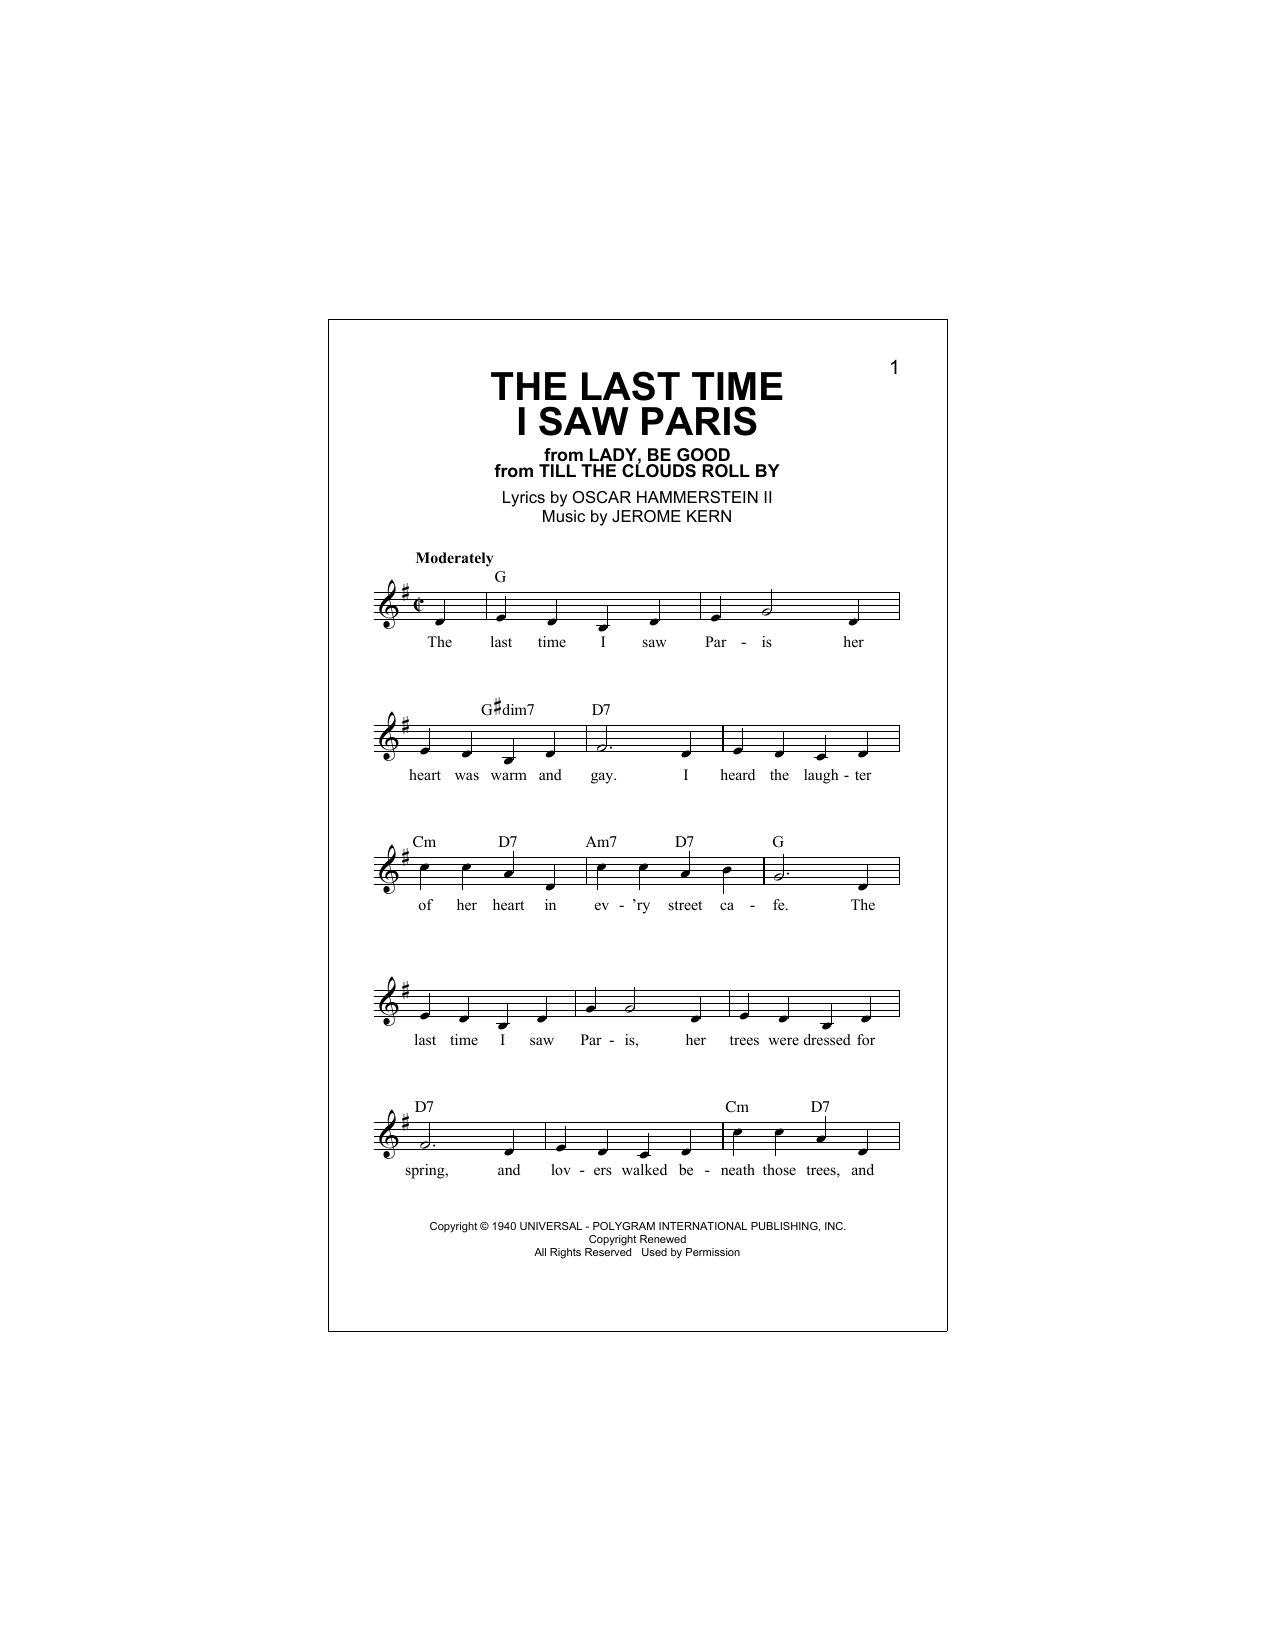 Oscar Hammerstein II The Last Time I Saw Paris sheet music notes and chords. Download Printable PDF.